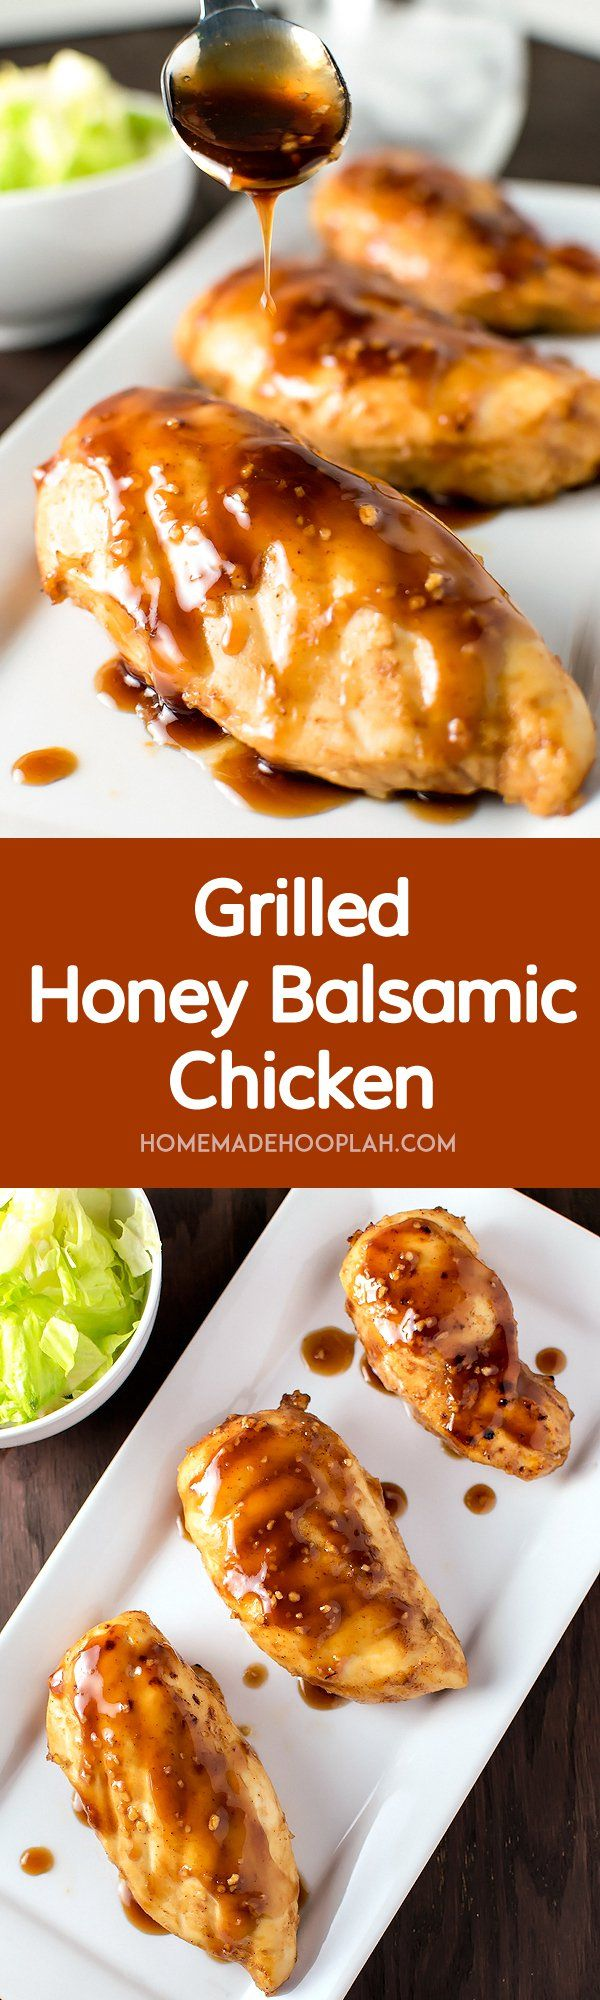 Grilled Honey Balsamic Chicken! A sweet honey balsamic marinade that makes chicken unbelievably tender and juicy. Marinates in half the time for twice the flavor! | HomemadeHooplah.com